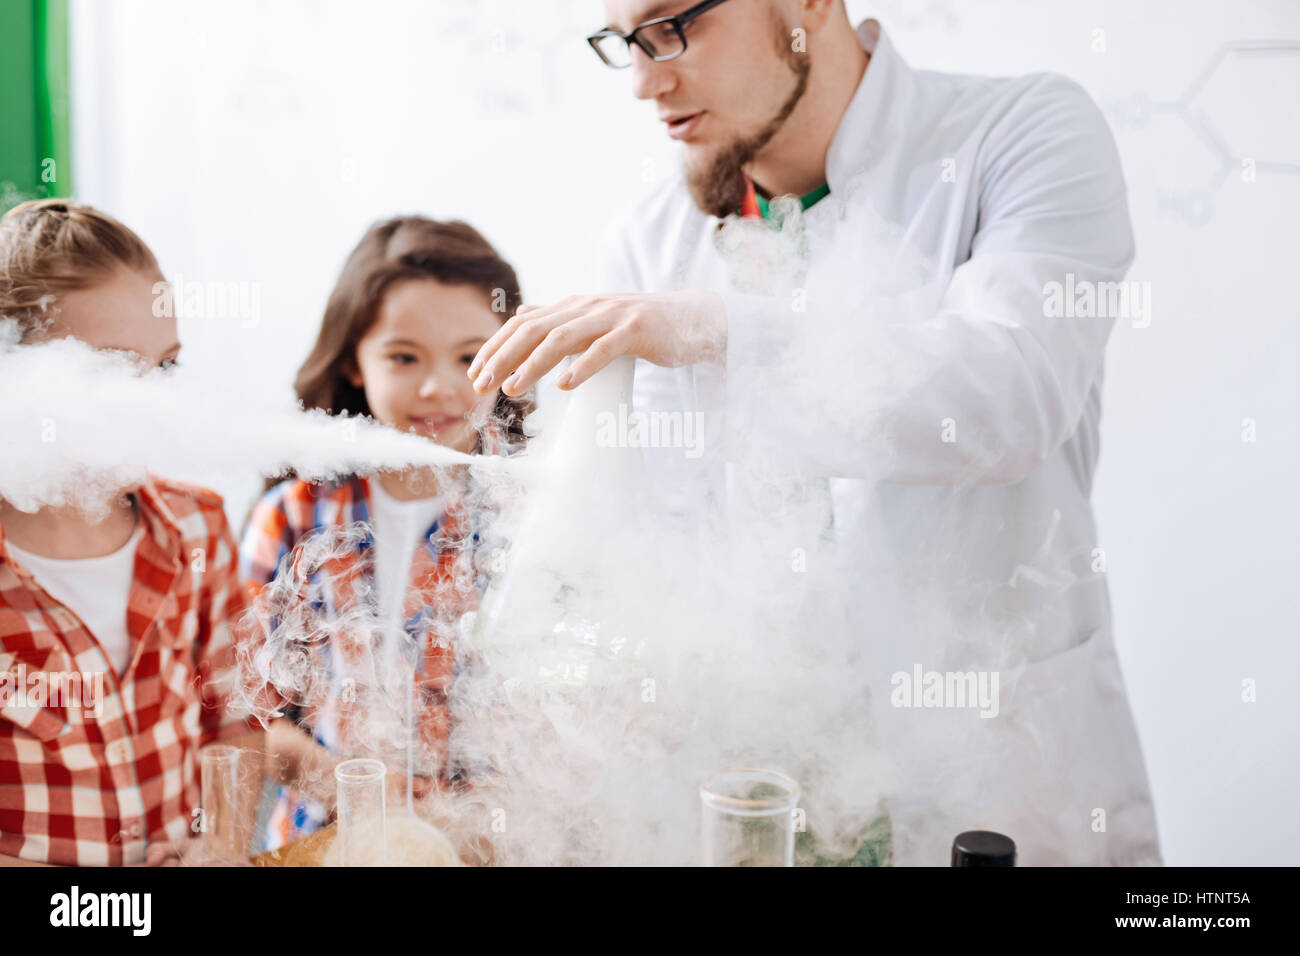 Interaction of chemical reagents. Serious nice experienced scientist performing an experiment and being surrounded - Stock Image